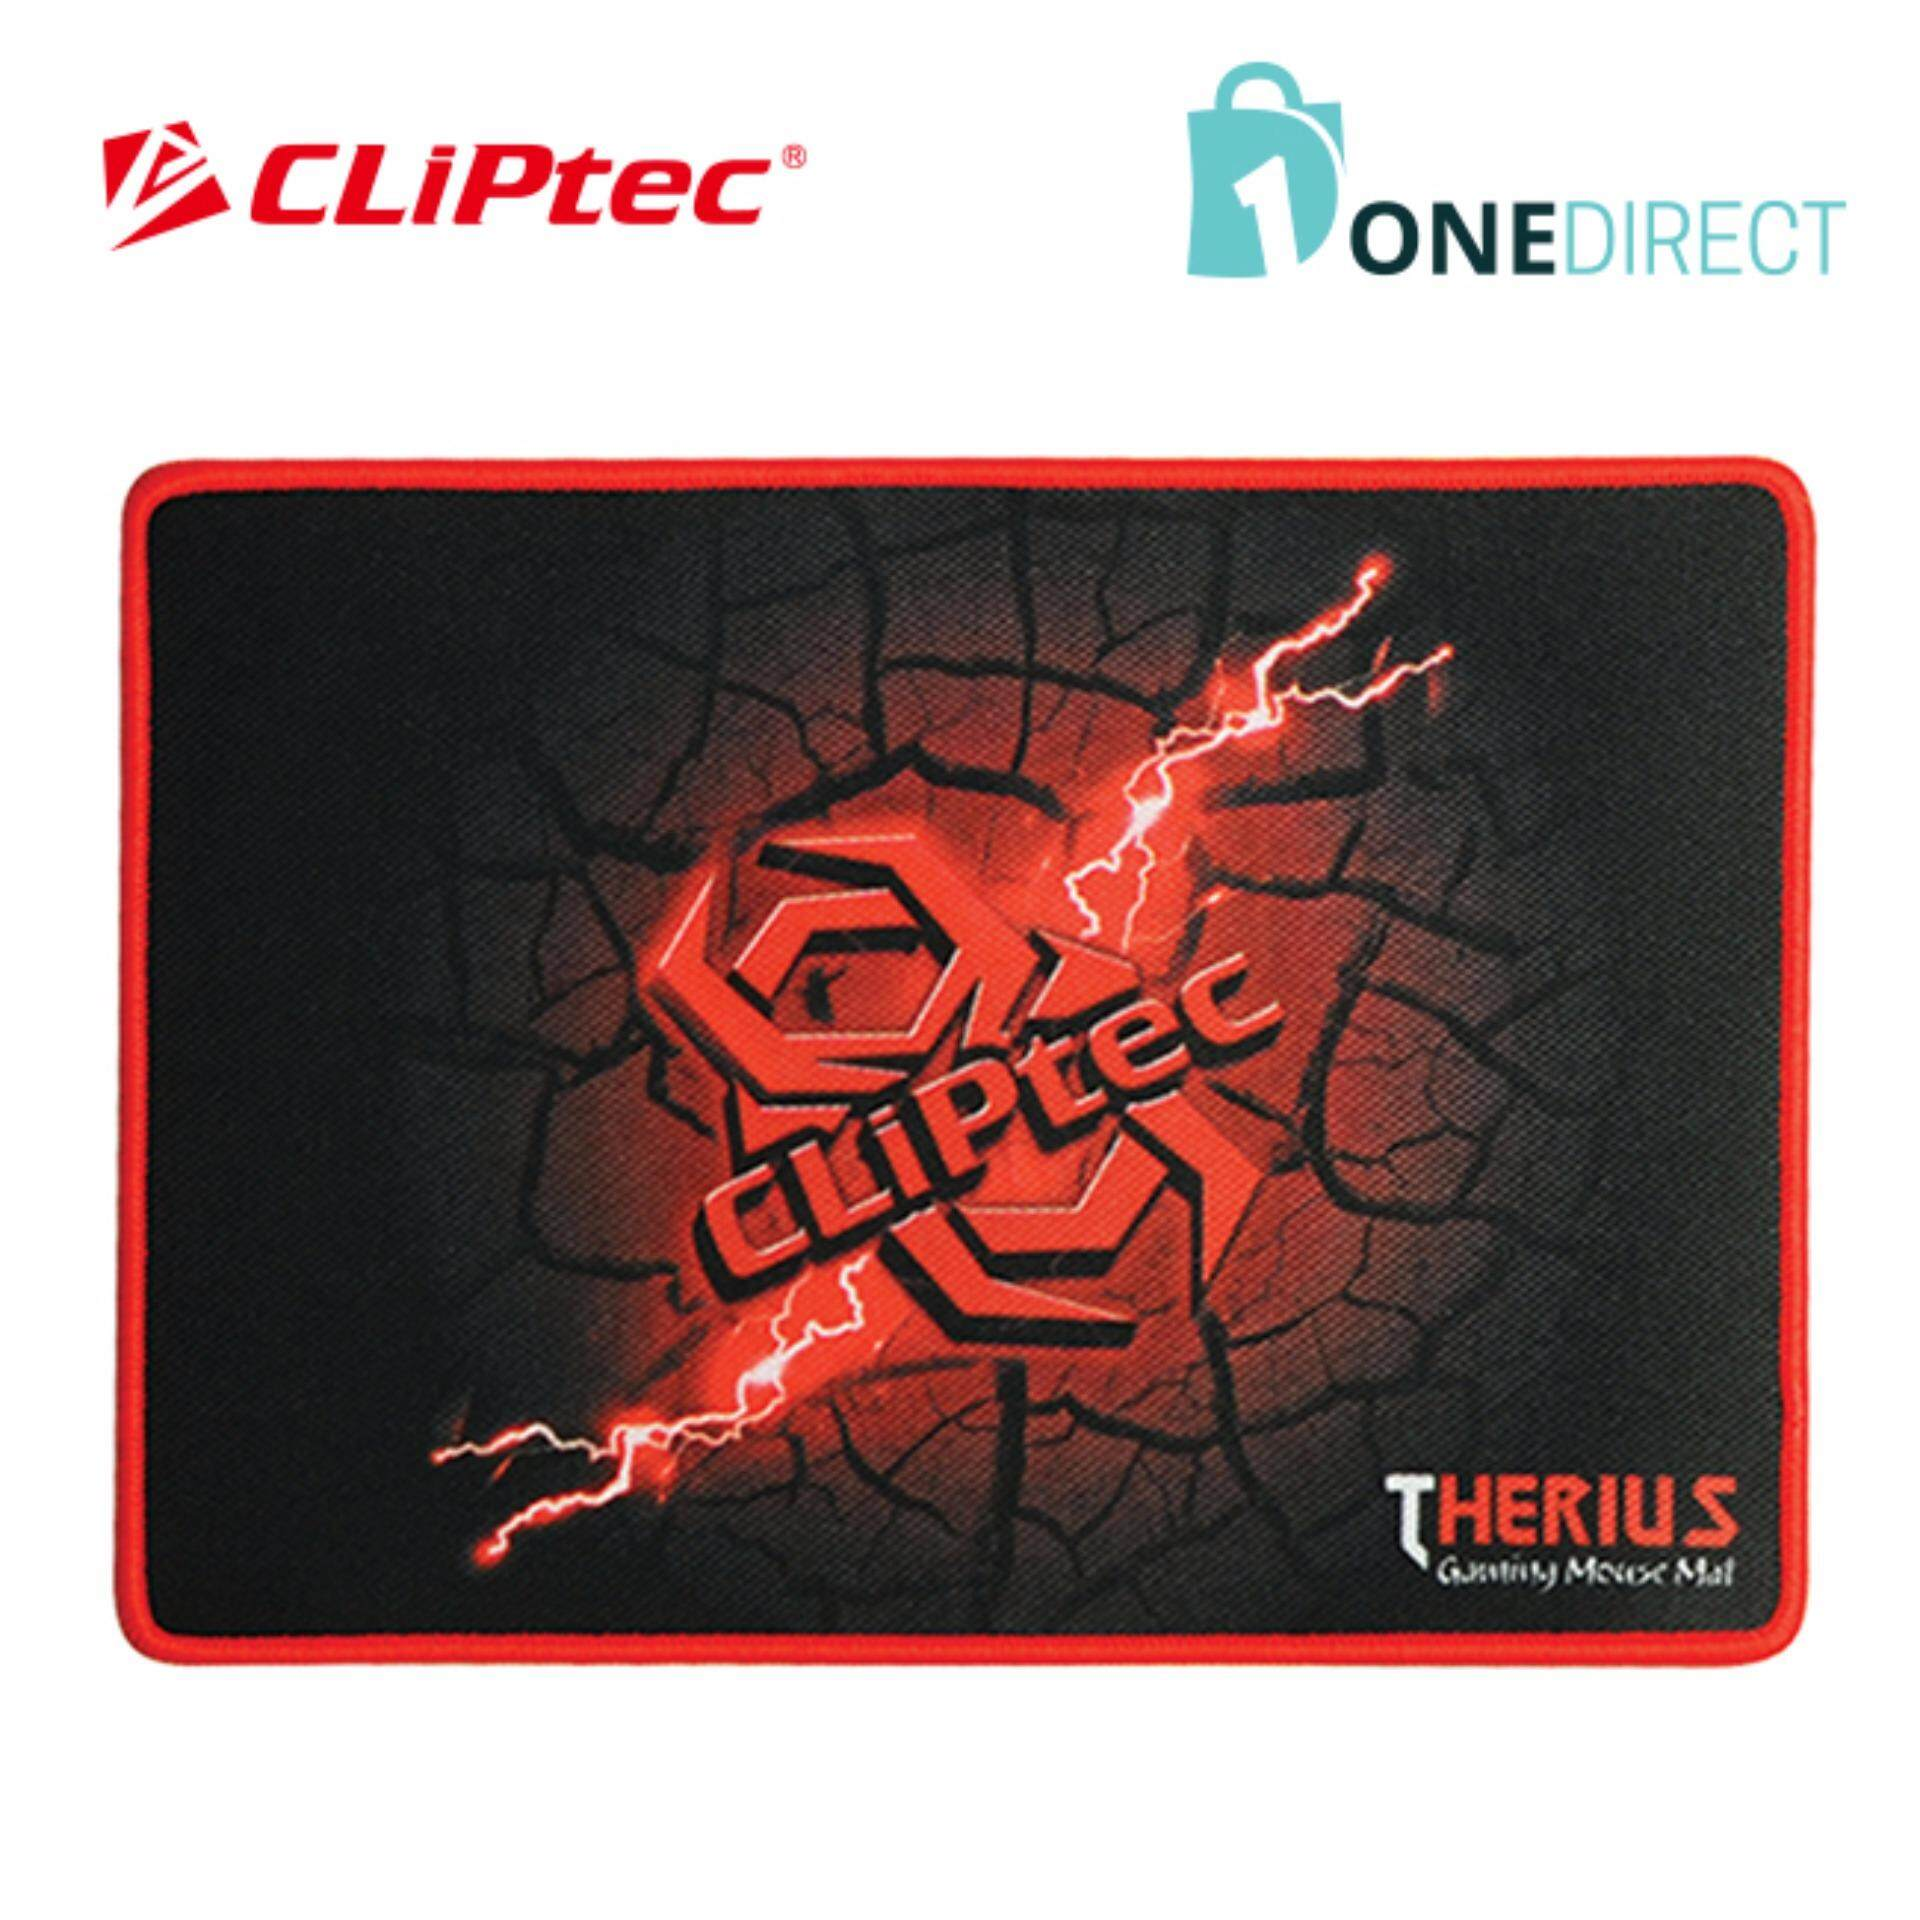 CLiPtec THERIUS Gaming Mouse Mat-RGY348 (Black)